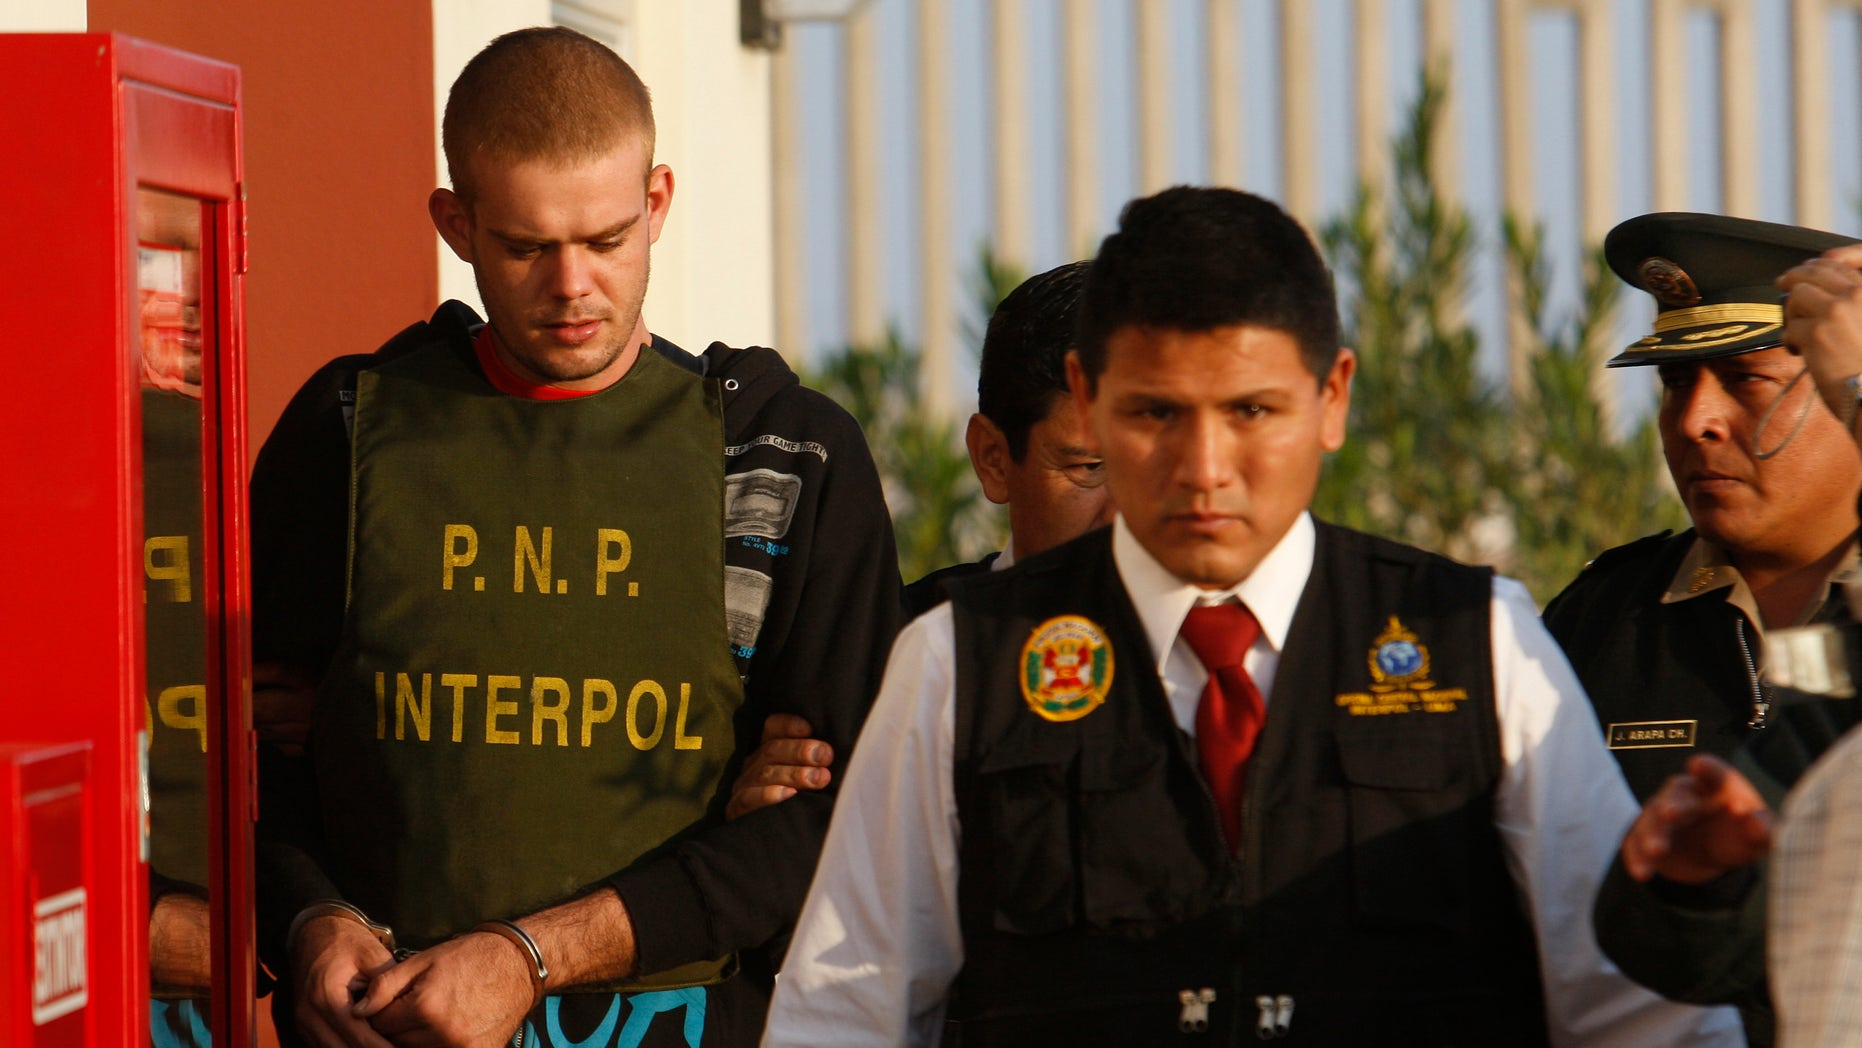 Peru's police officers escort Dutch citizen Joran Van der Sloot, left, outside a Peruvian police station, near the border with Chile in Tacna, Peru, Friday, June 4, 2010. The suspect is accused of stabbing three fellow inmates in a Peruvian prison. (AP)